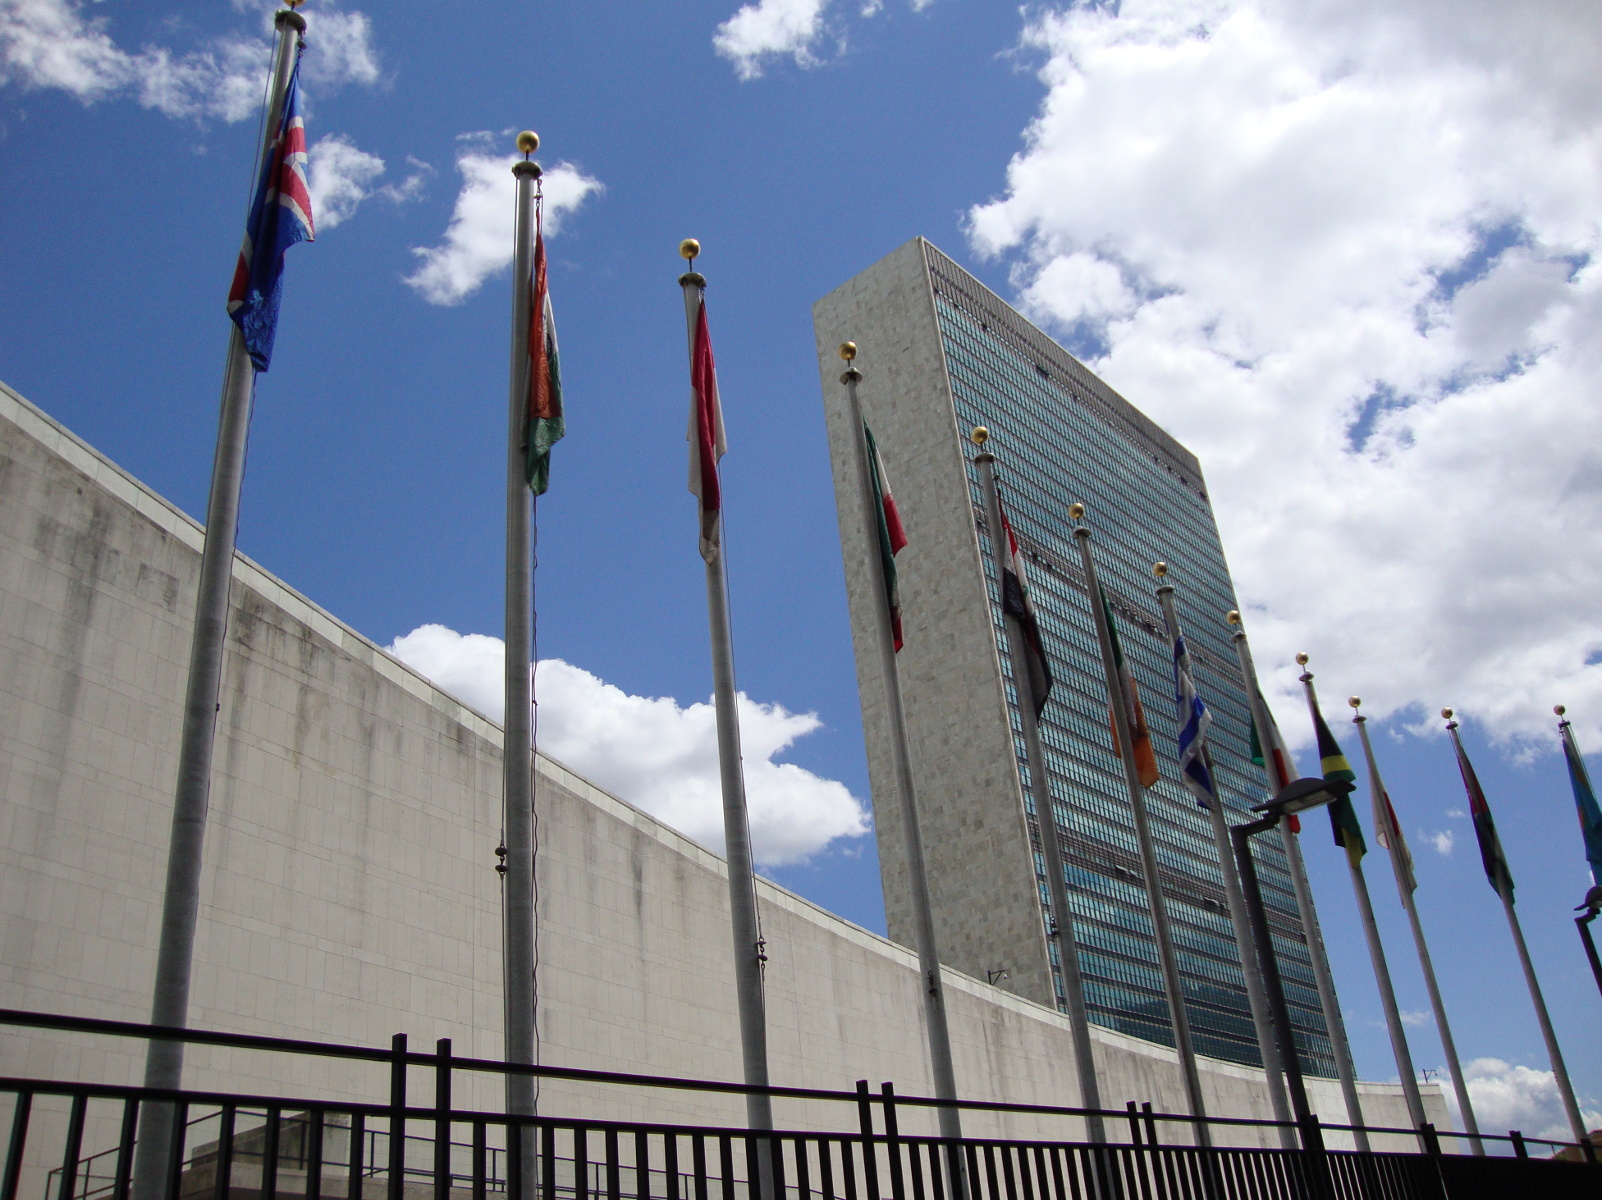 United Nations Secretariat, New York City, with flags of member states in the foreground.